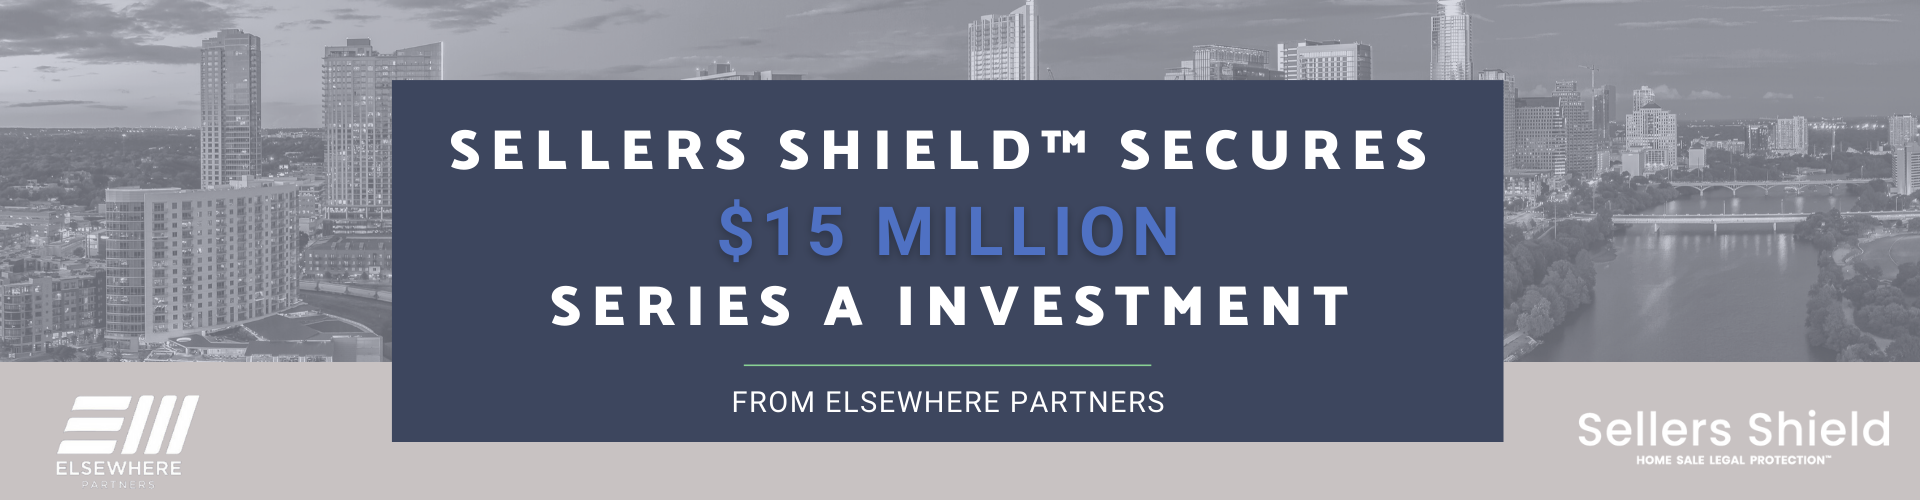 Sellers Shield™ Secures $15Million Series A Investment